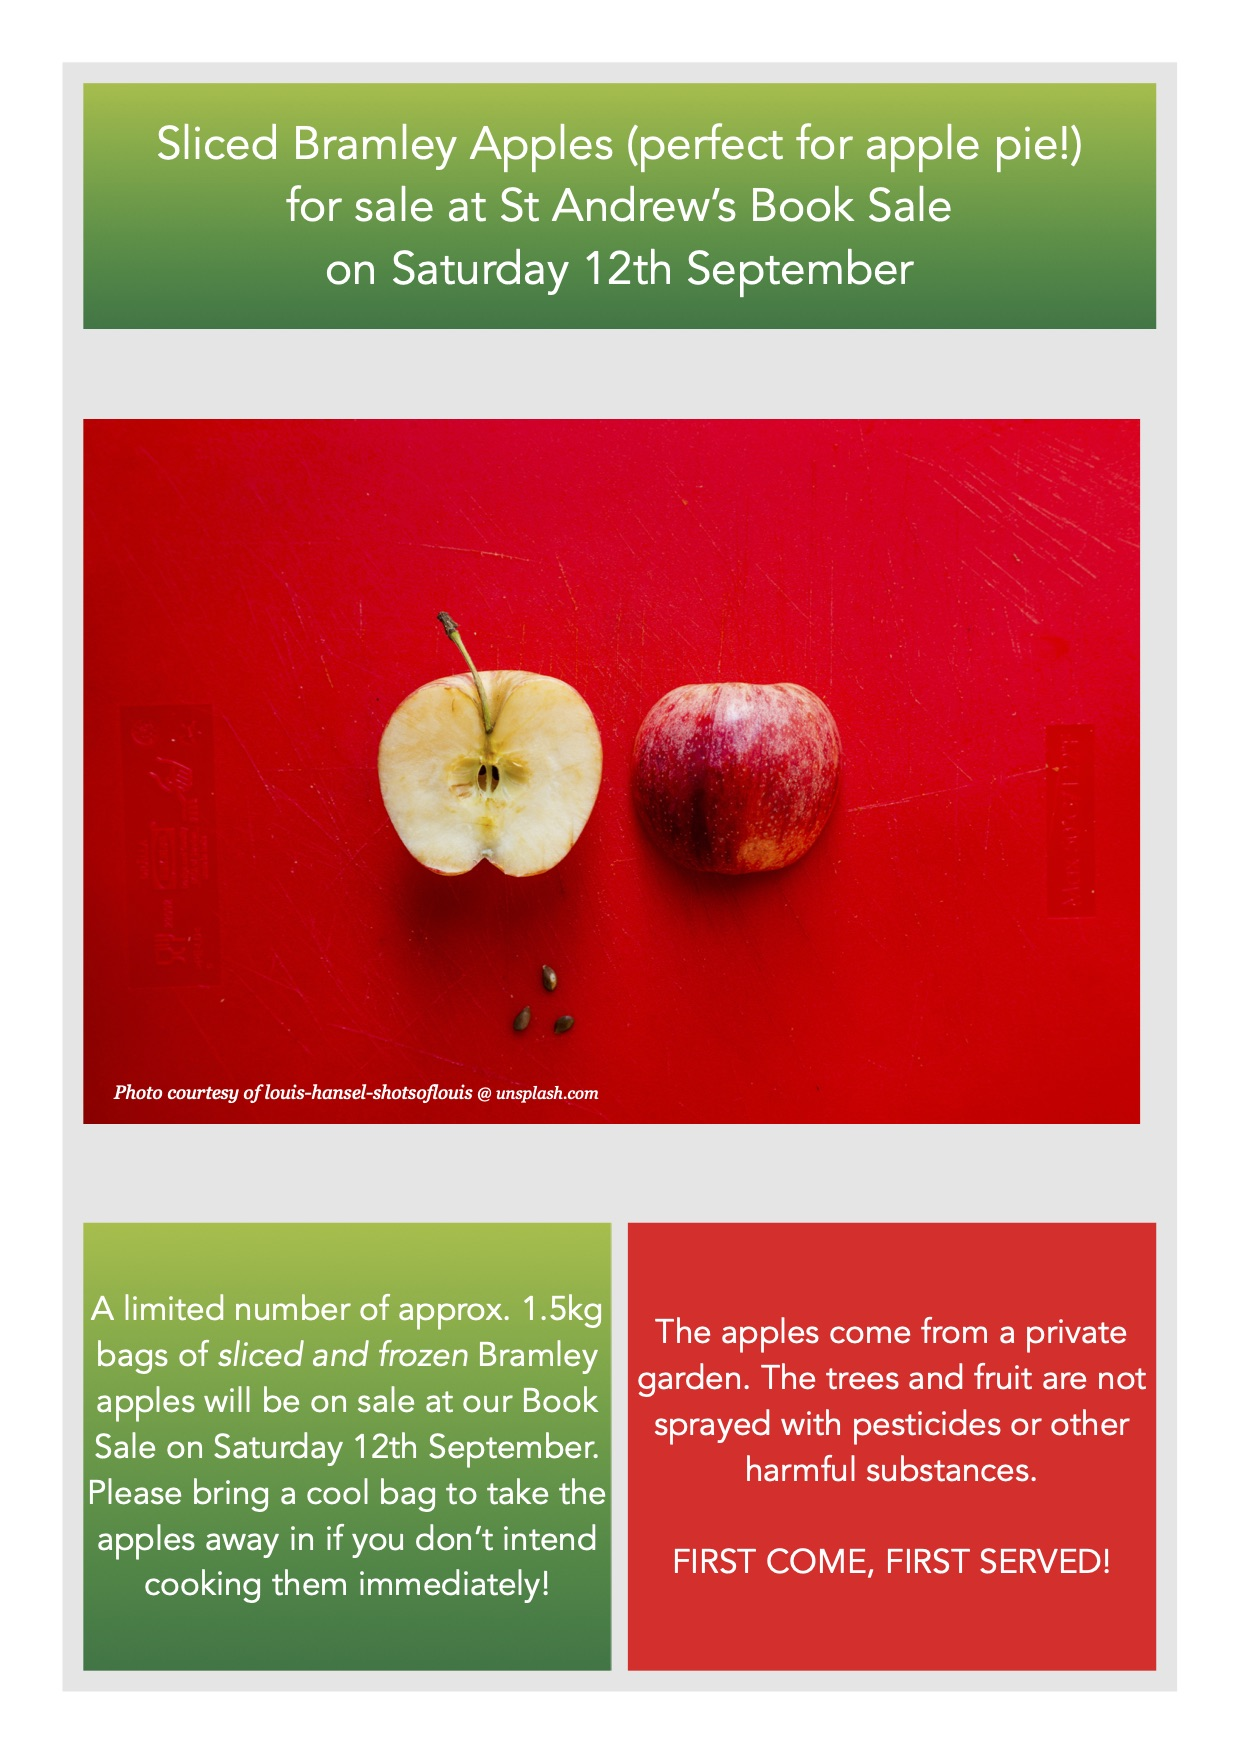 Sale of apples at book sale